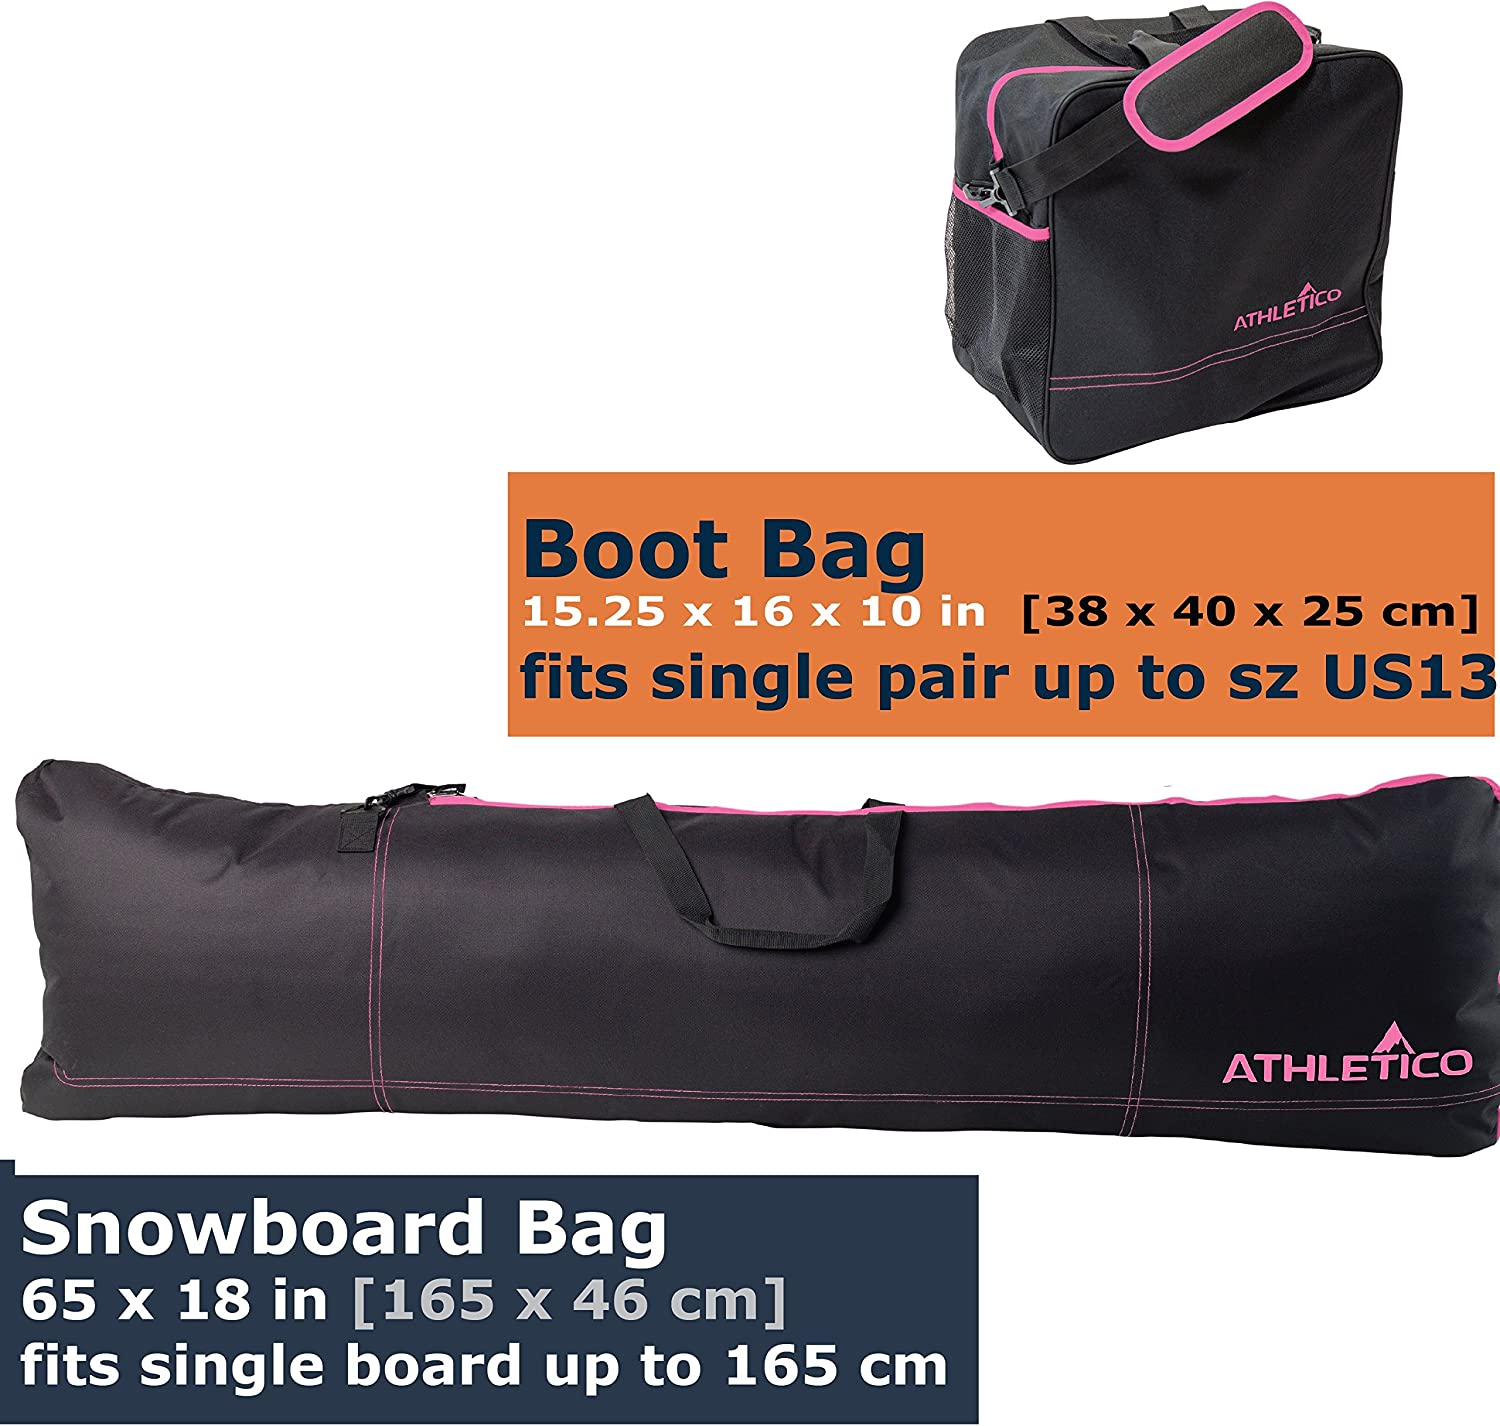 Store /& Transport Snowboard Up to 165 cm and Boots Up to Size 13 Black Includes 1 Snowboard Bag /& 1 Boot Bag Athletico Two-Piece Snowboard and Boot Bag Combo